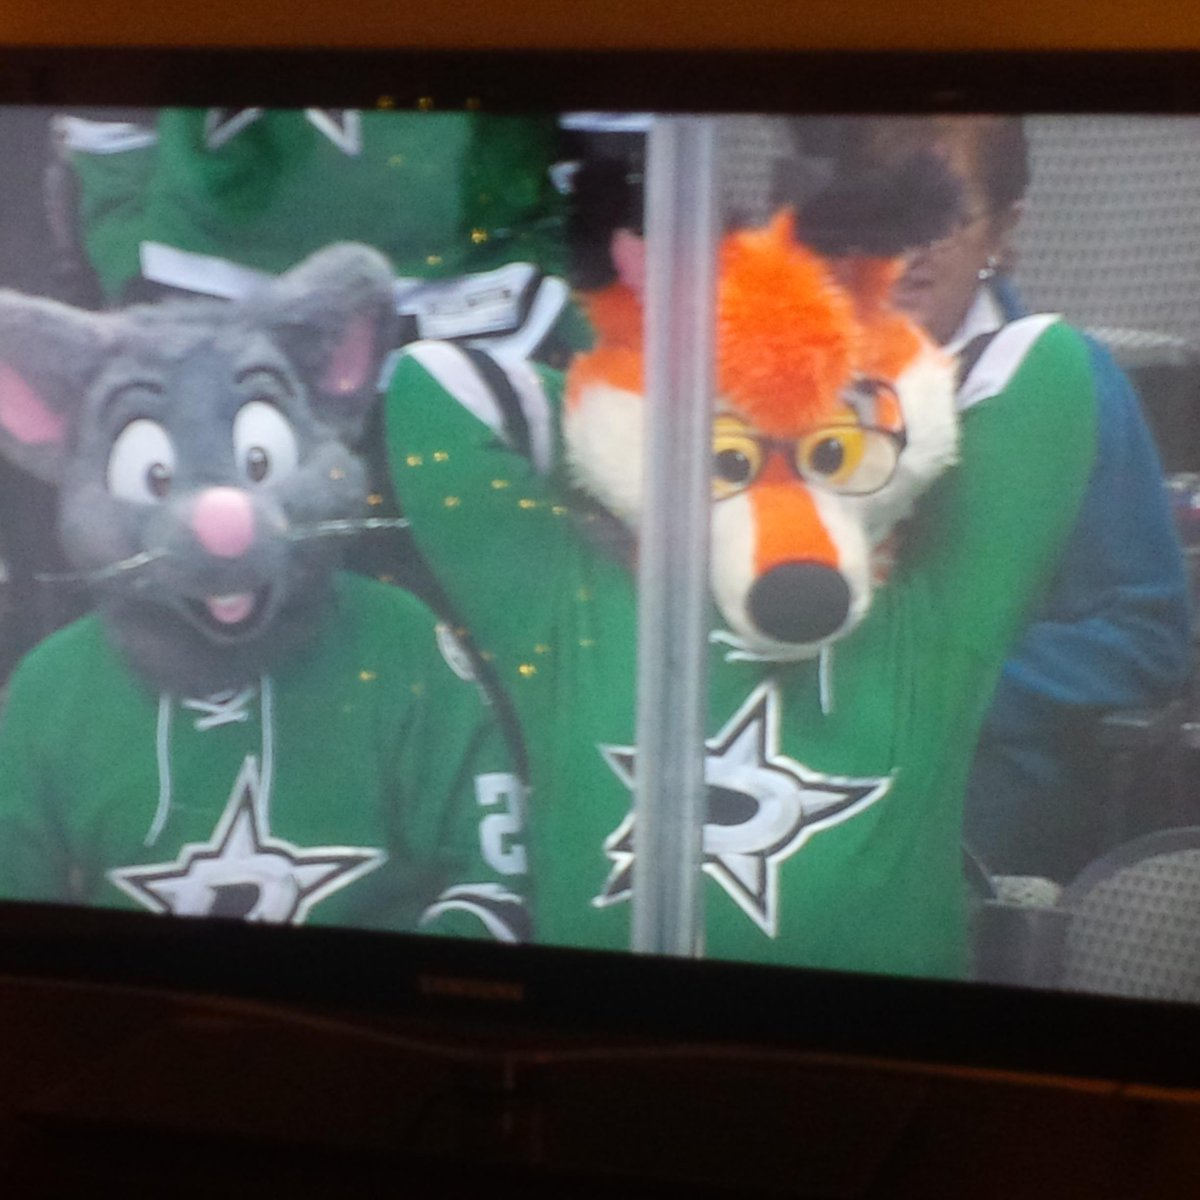 It's good to see our friends, the furries, are still attending Stars' games in DAL. Keep plushing in the free world! http://t.co/i0EVJOmwzn